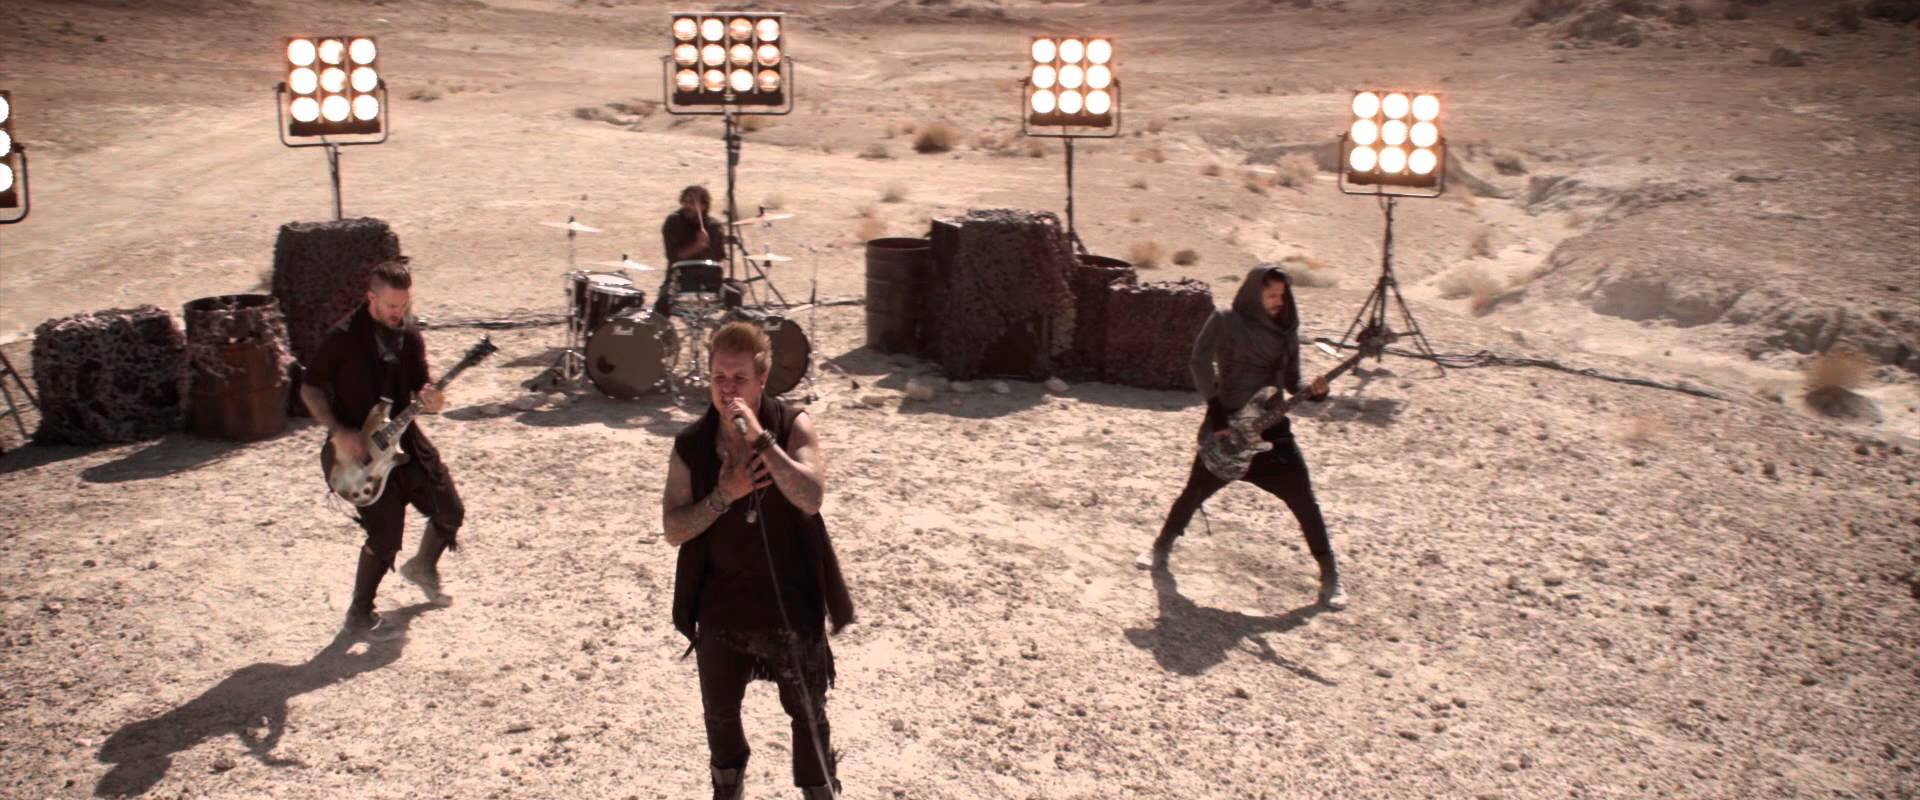 Listen to face everything and rise songs by papa roach download.